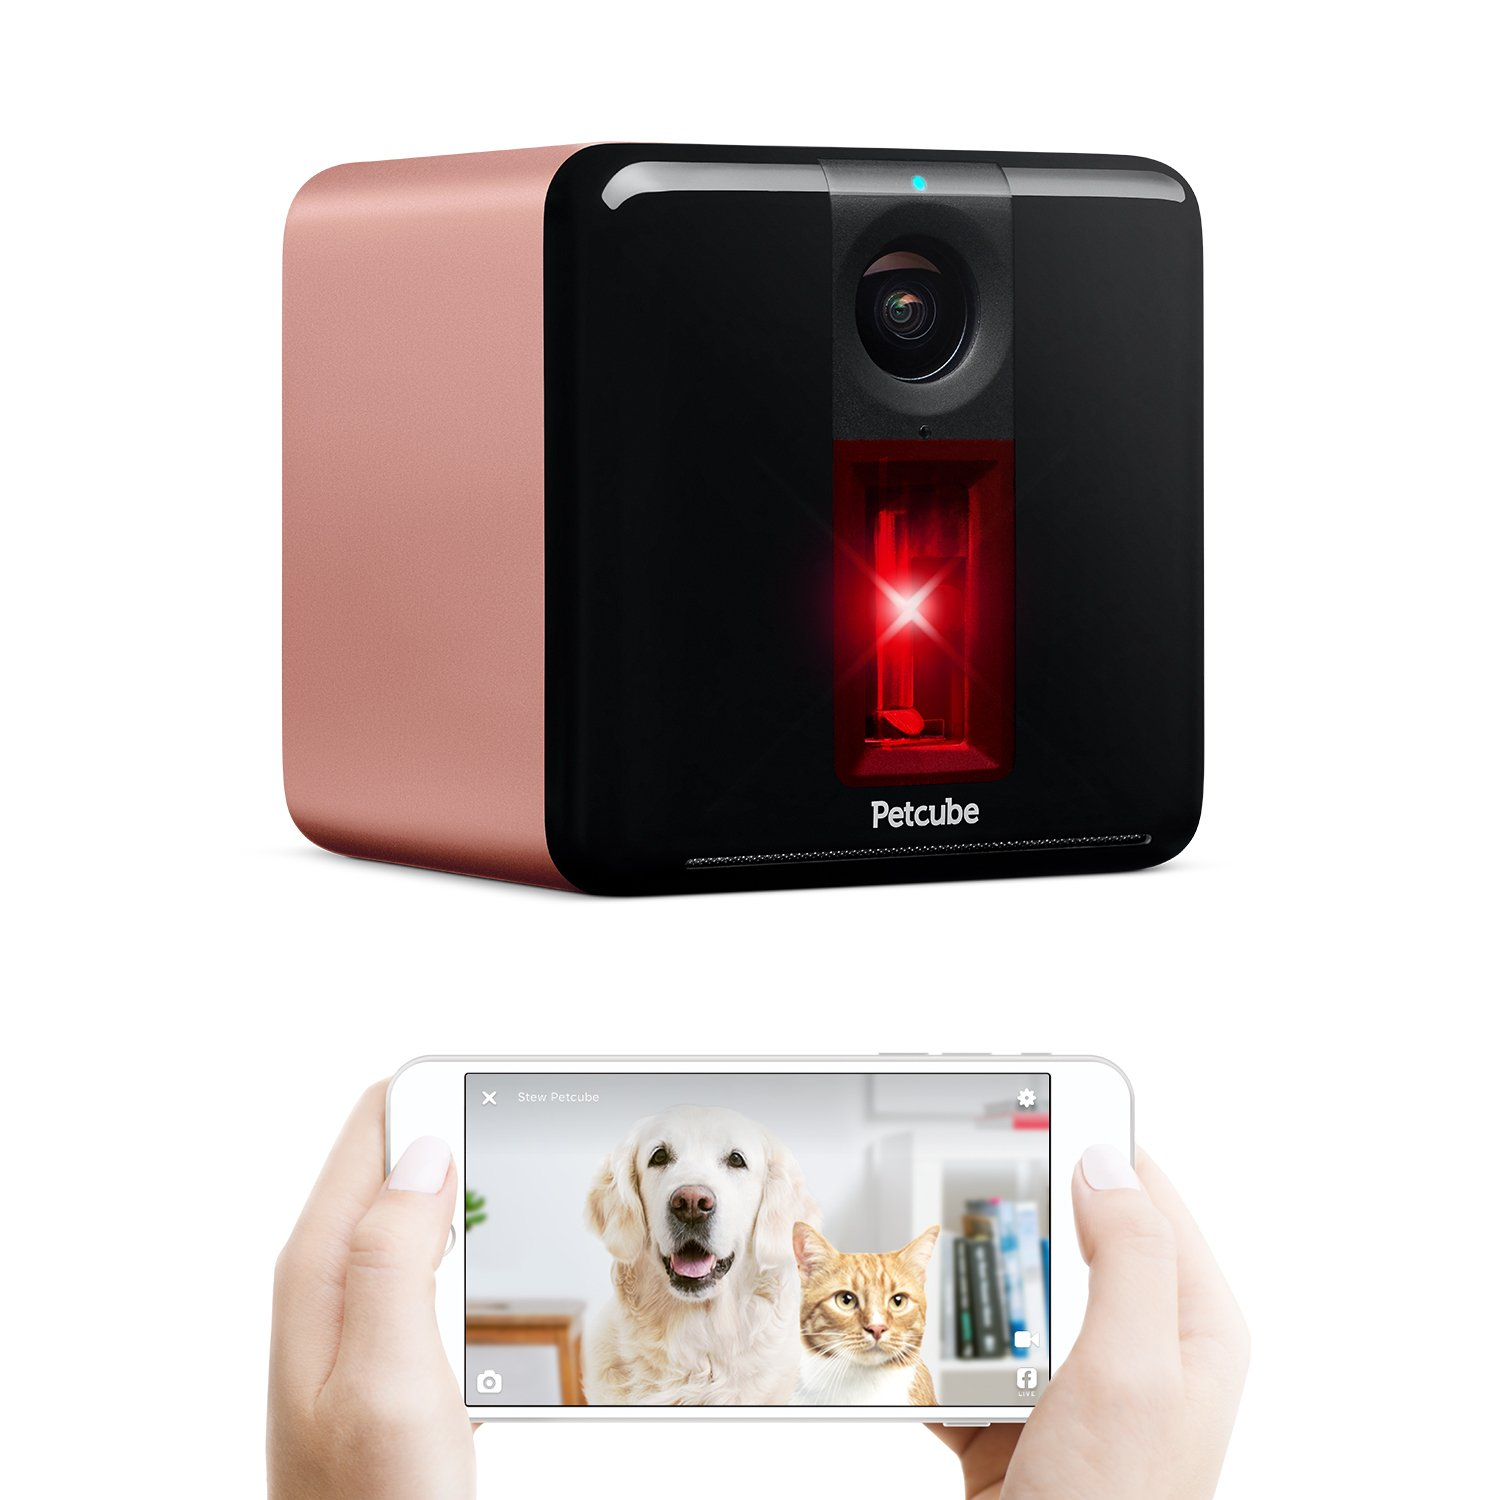 pet camera reviews : Buy Petcube pink on Amazon